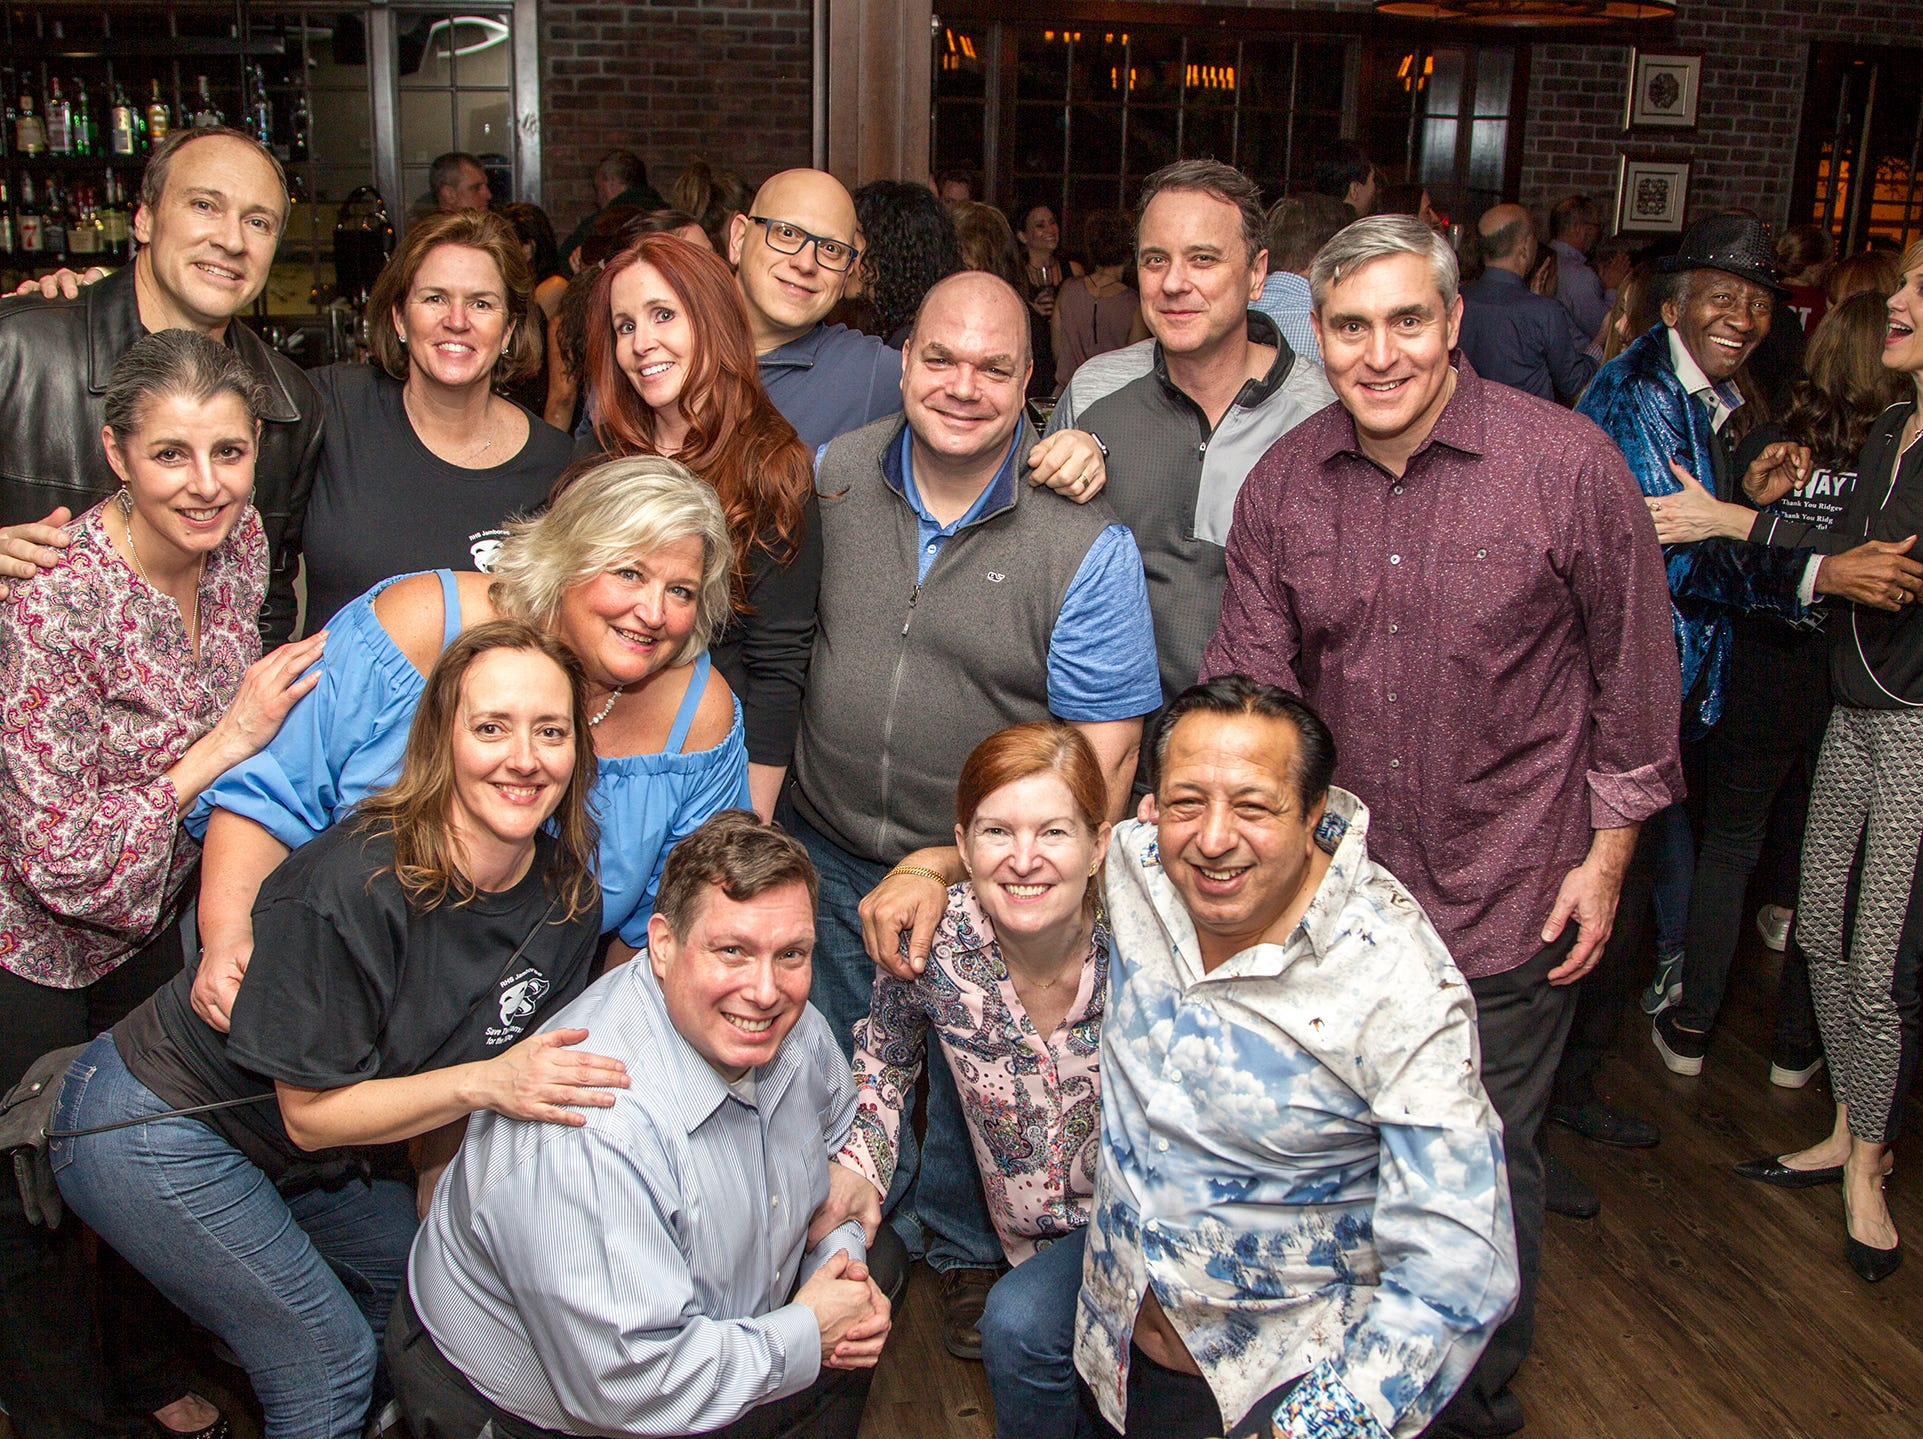 Past and present producers, PJ Lalwani, James Sharo, Meghan Bracken, Dru Pierce, Leigh Warren, Brian Warren, Gail MC Carthy, Vivian Muldoon, Mike Muldoon, Fred Jubitz, Erin Taddel, TOny Cambria. Ridgewood High School 2019 Jamboree after party at Park West Loft in Ridgewood.  2/9/2019